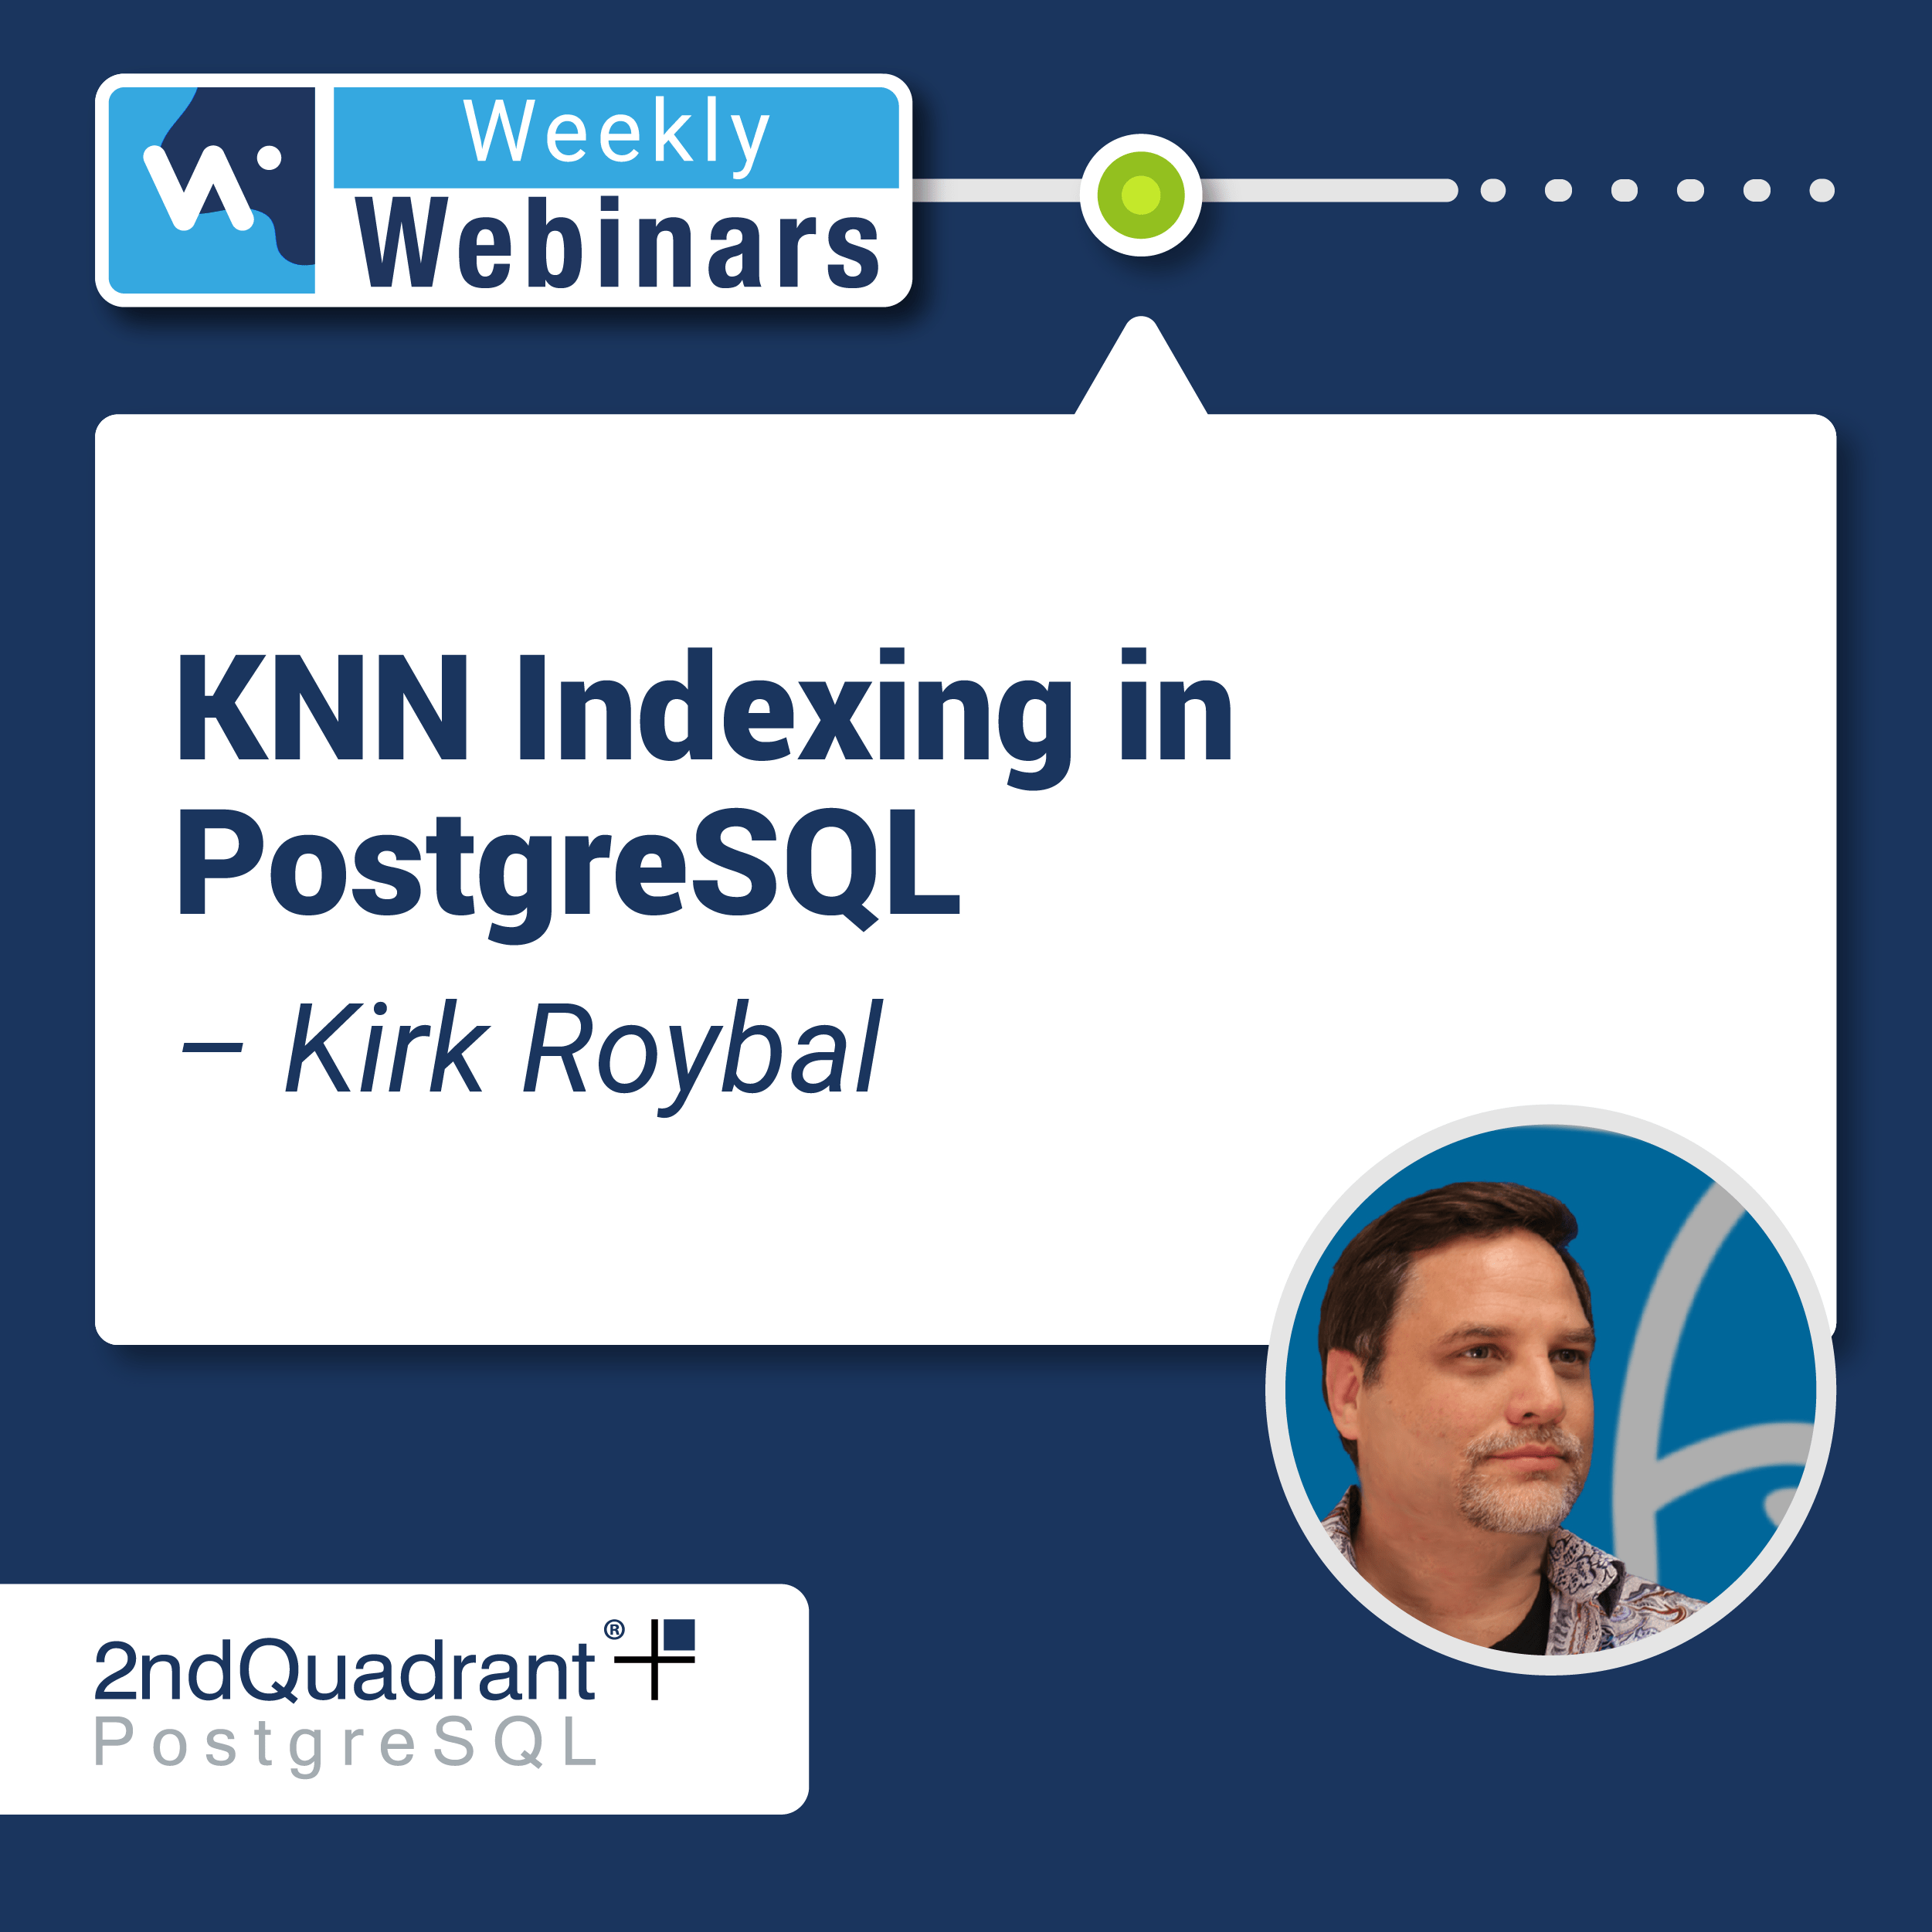 KNN Indexing in PostgreSQL